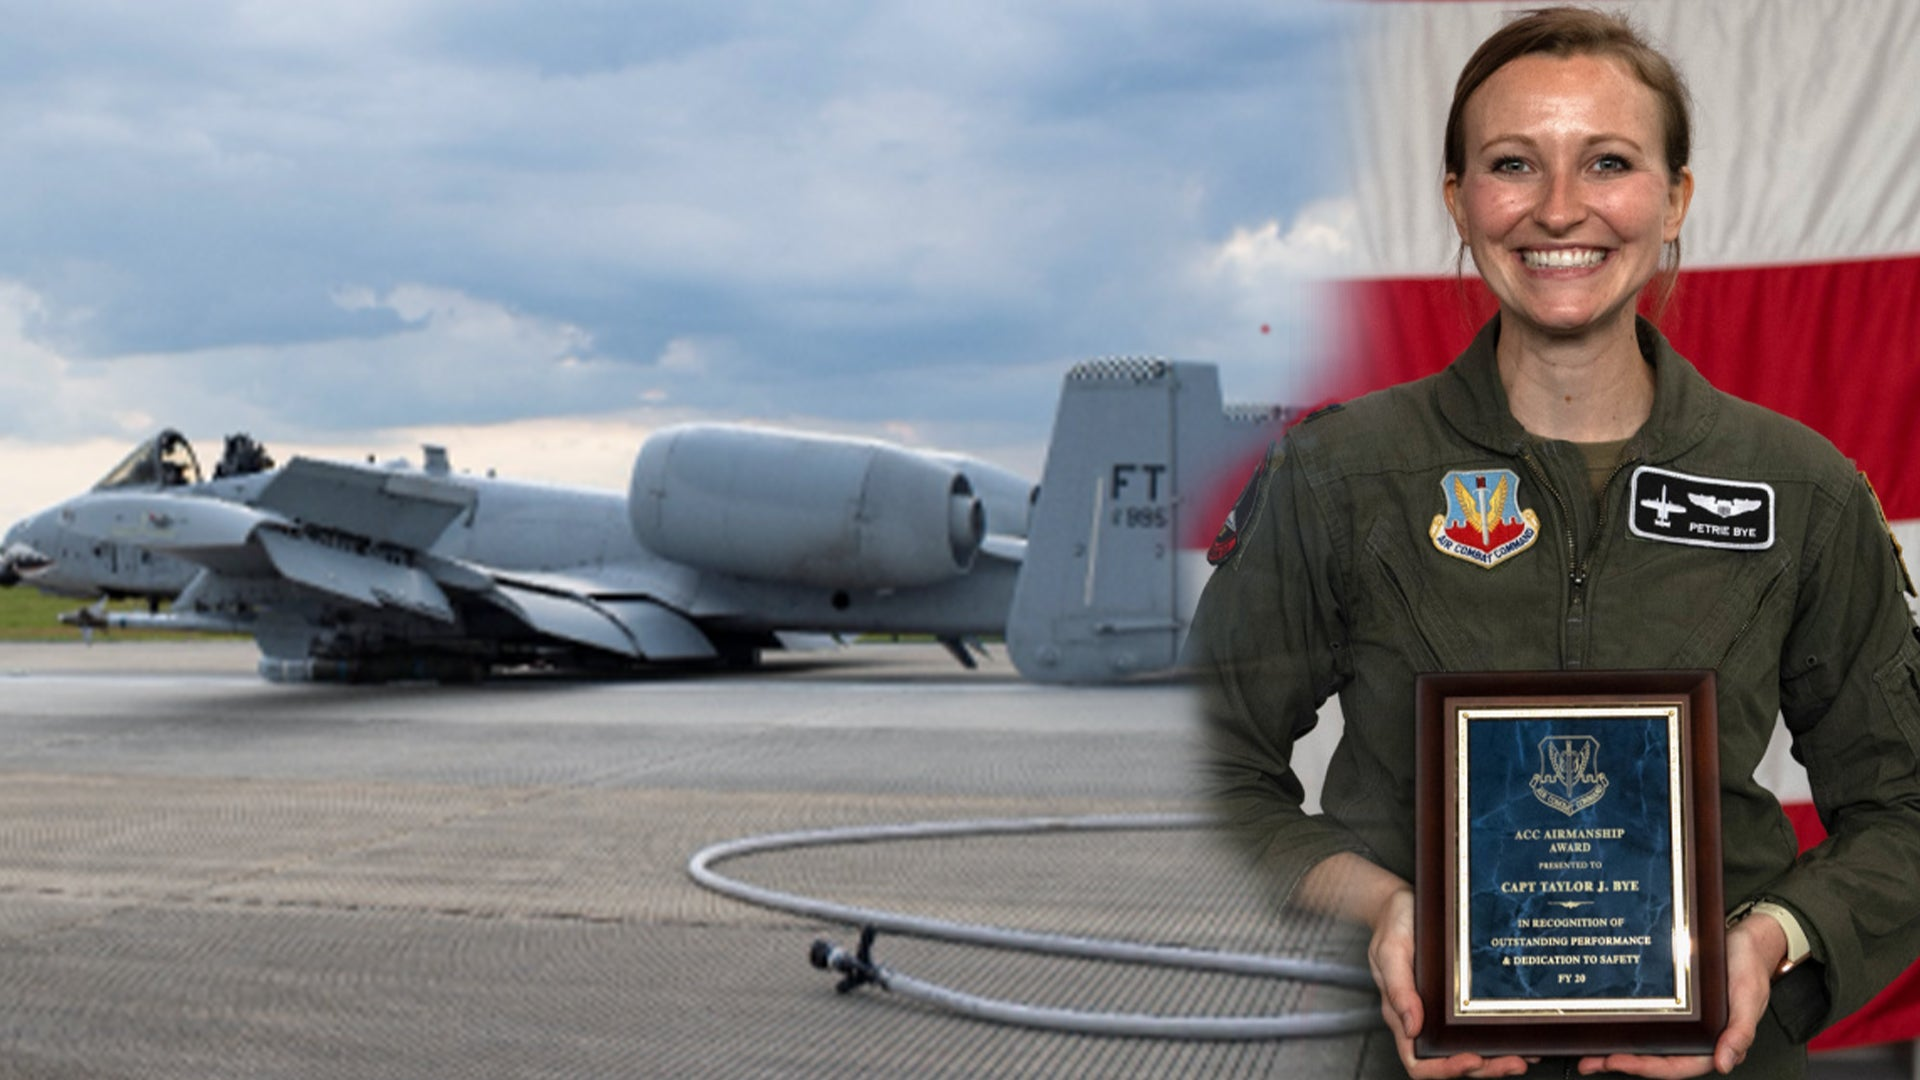 Badass Air Force pilot recognized for belly-landing an A-10 with canopy ripped off